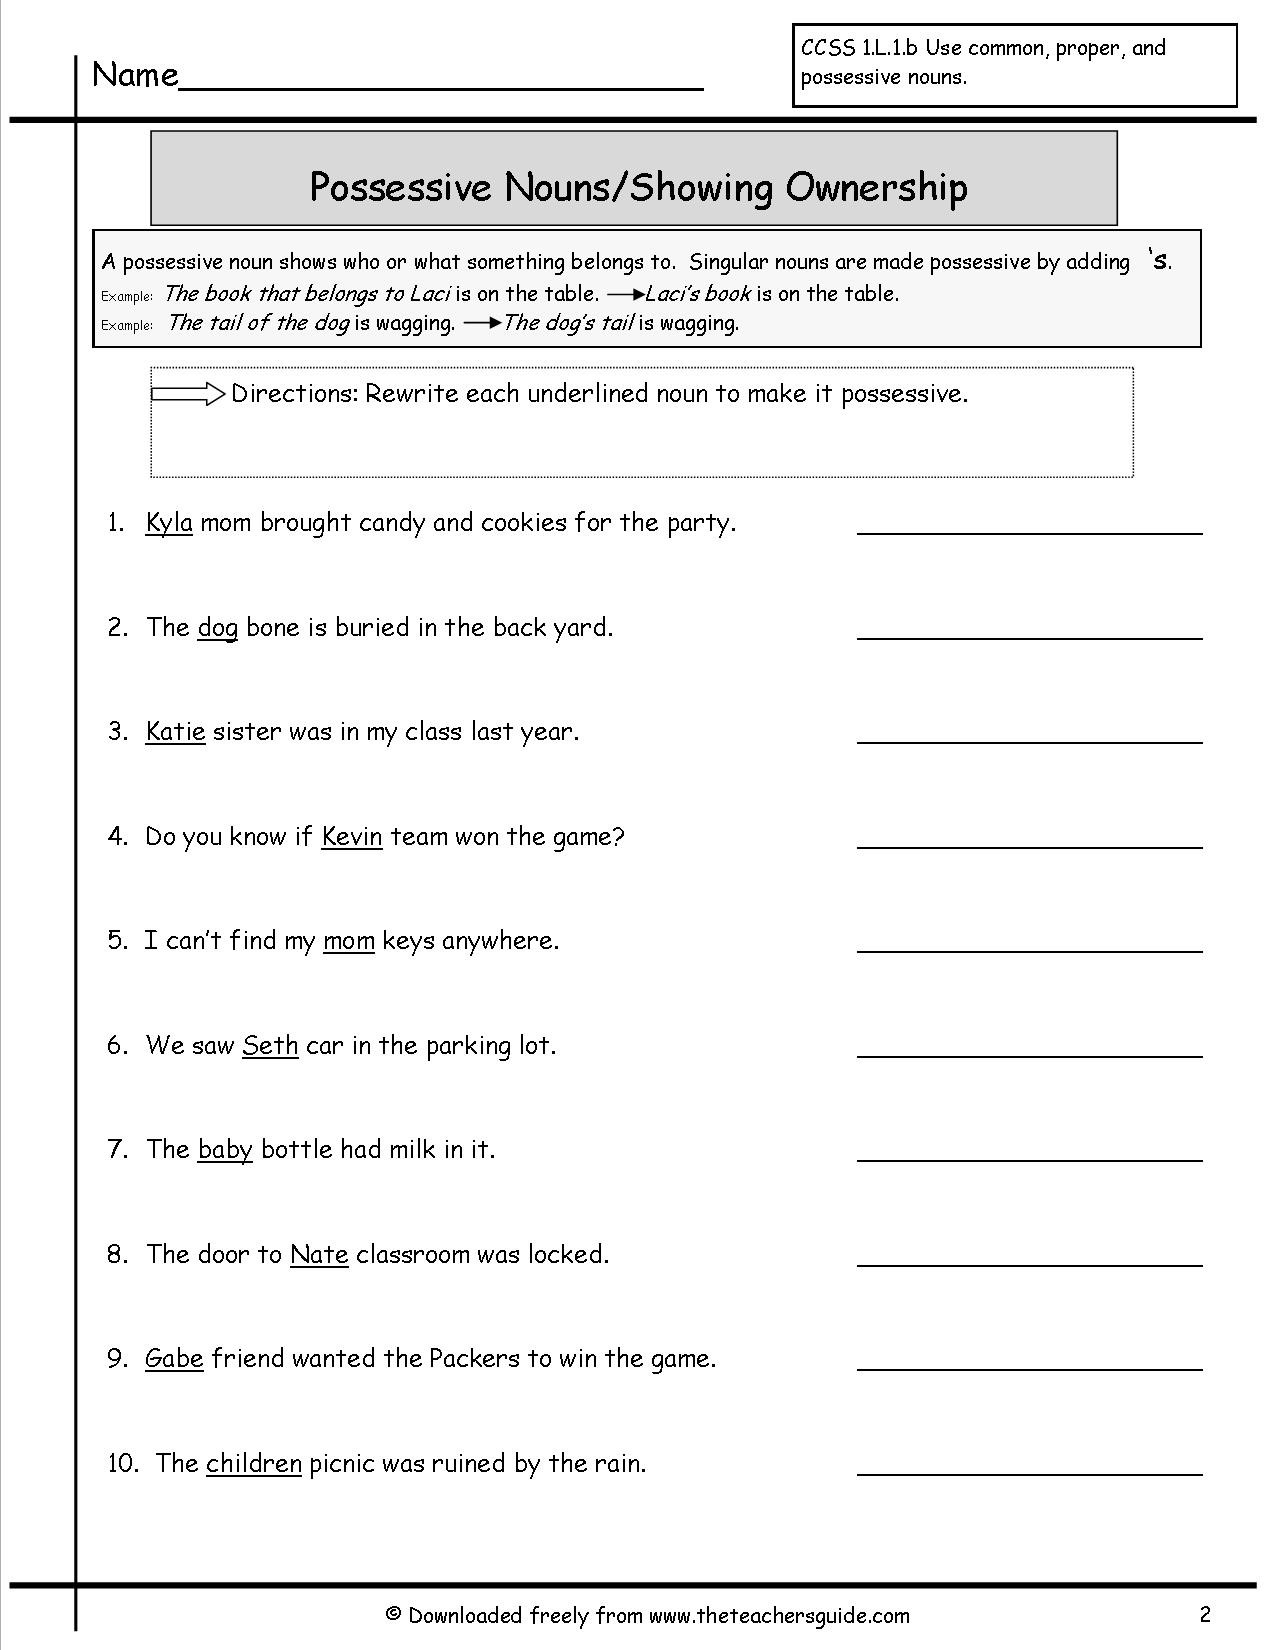 Possessive Nouns Worksheets 2nd Grade Wonders Second Grade Unit Two Week Five Printouts